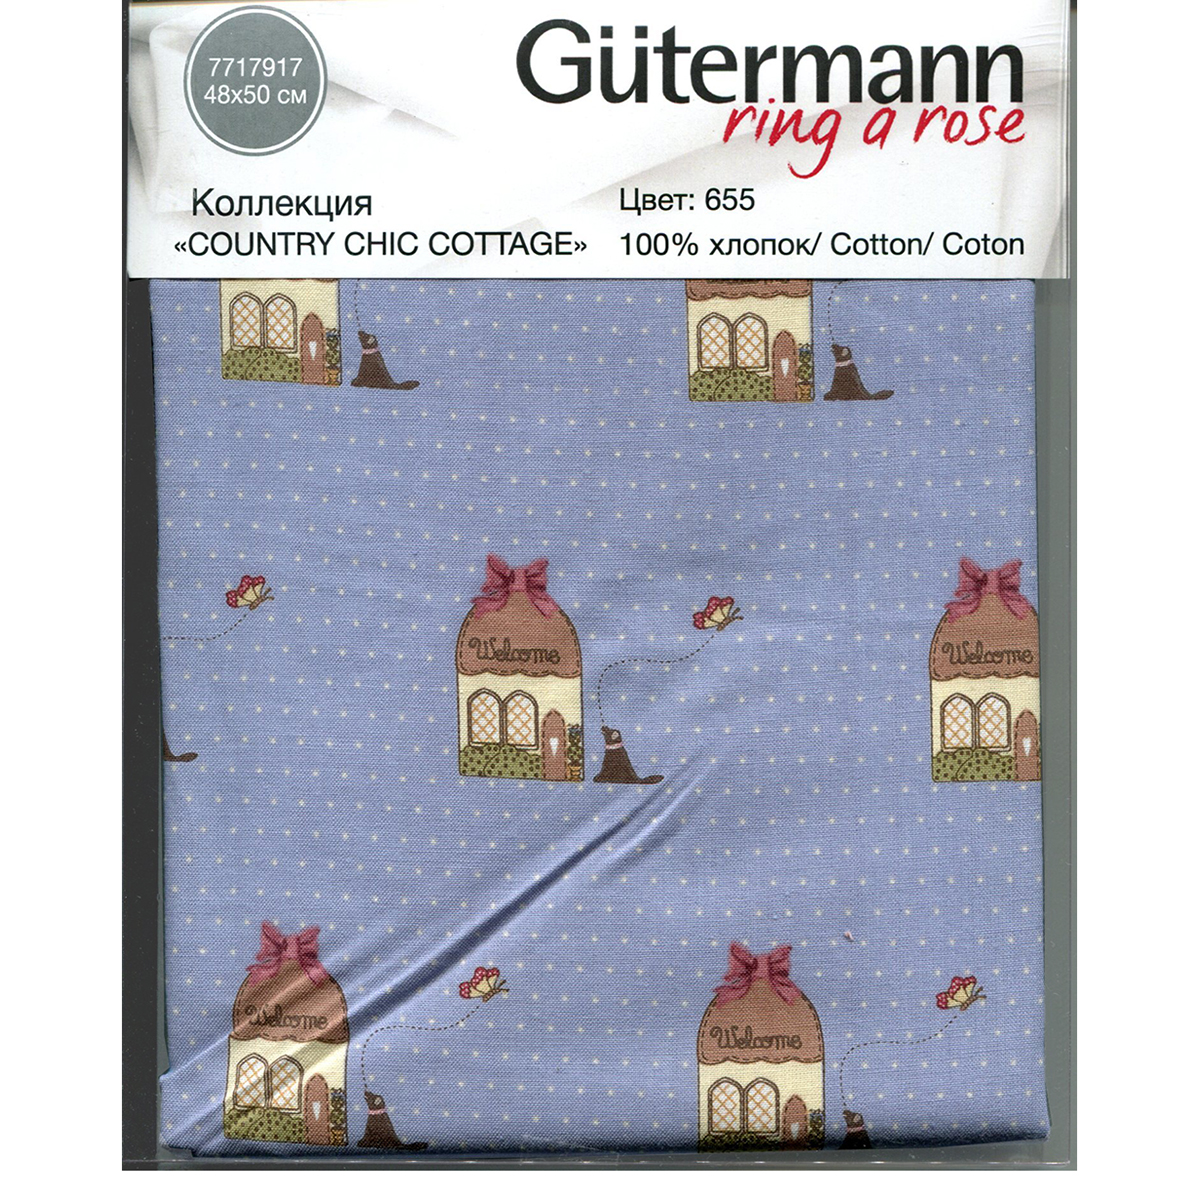 Ткань Gutermann Country Chic Cottage, 48 х 50 см. 649325_655 ткань gutermann pemberly 48 х 50 см 649101 844